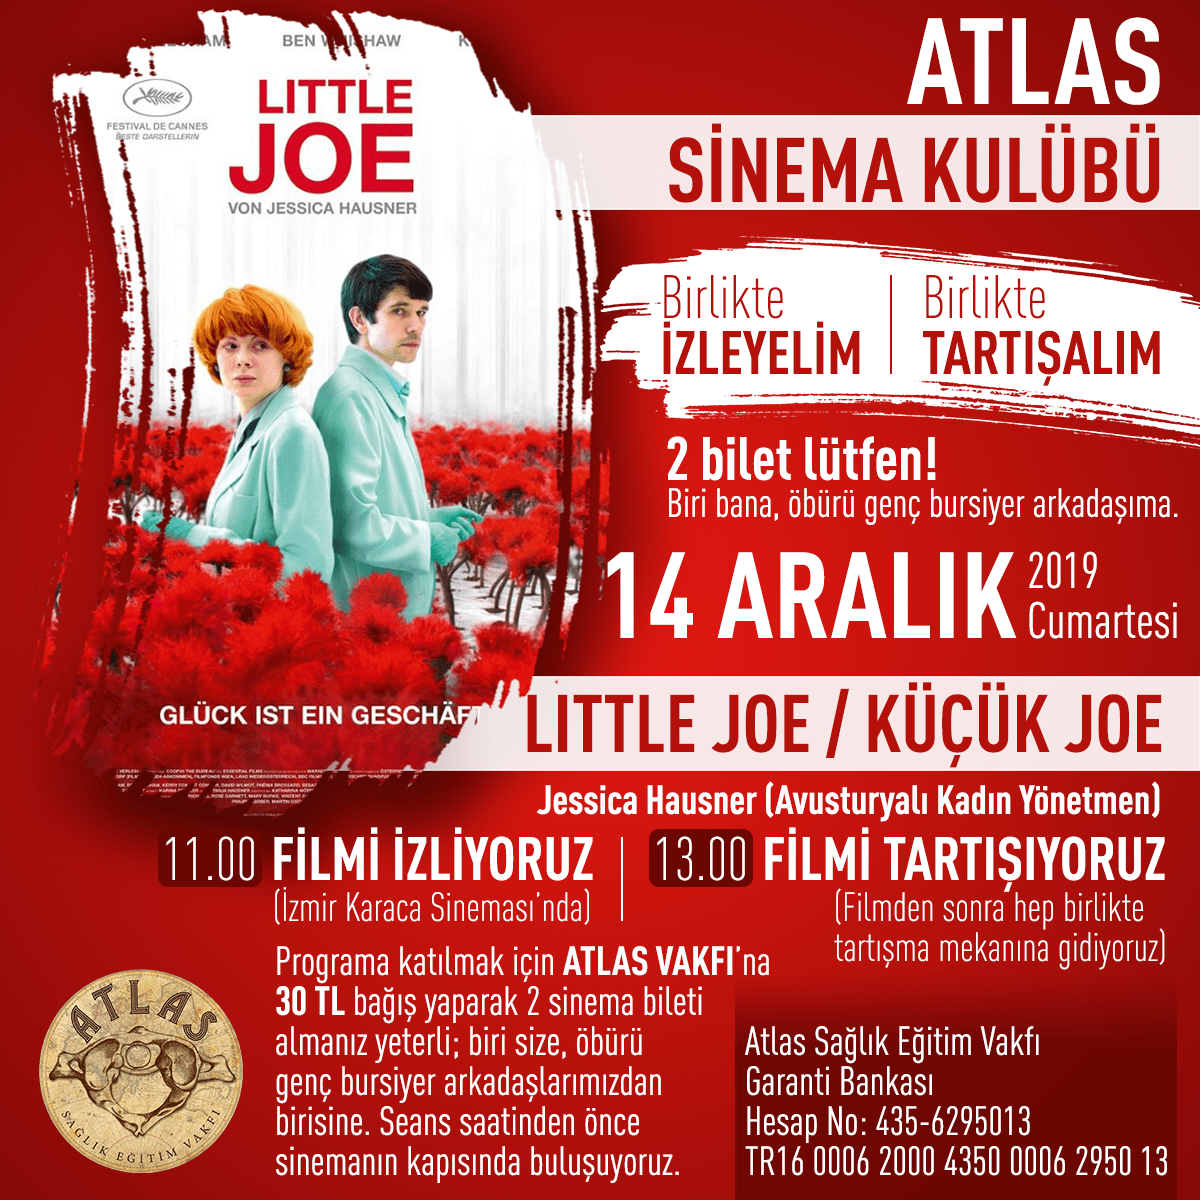 Atlas Sinema Kulübü - Little Joe